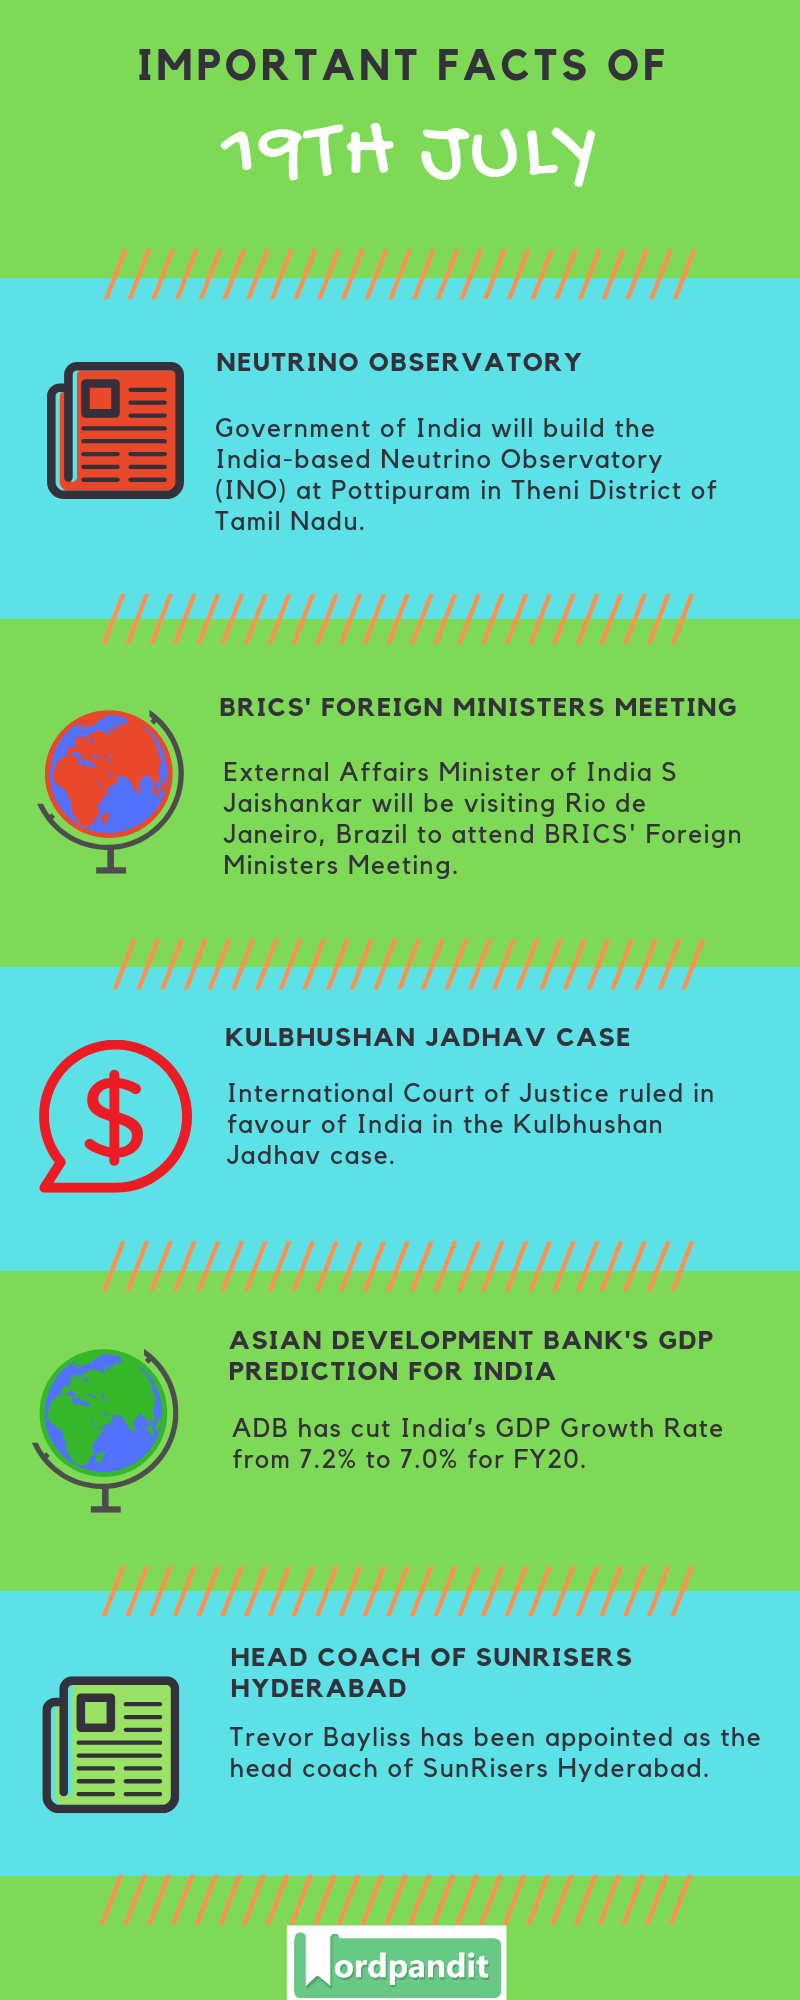 Daily Current Affairs 19 July 2019 Current Affairs Quiz 19 July 2019 Current Affairs Infographic